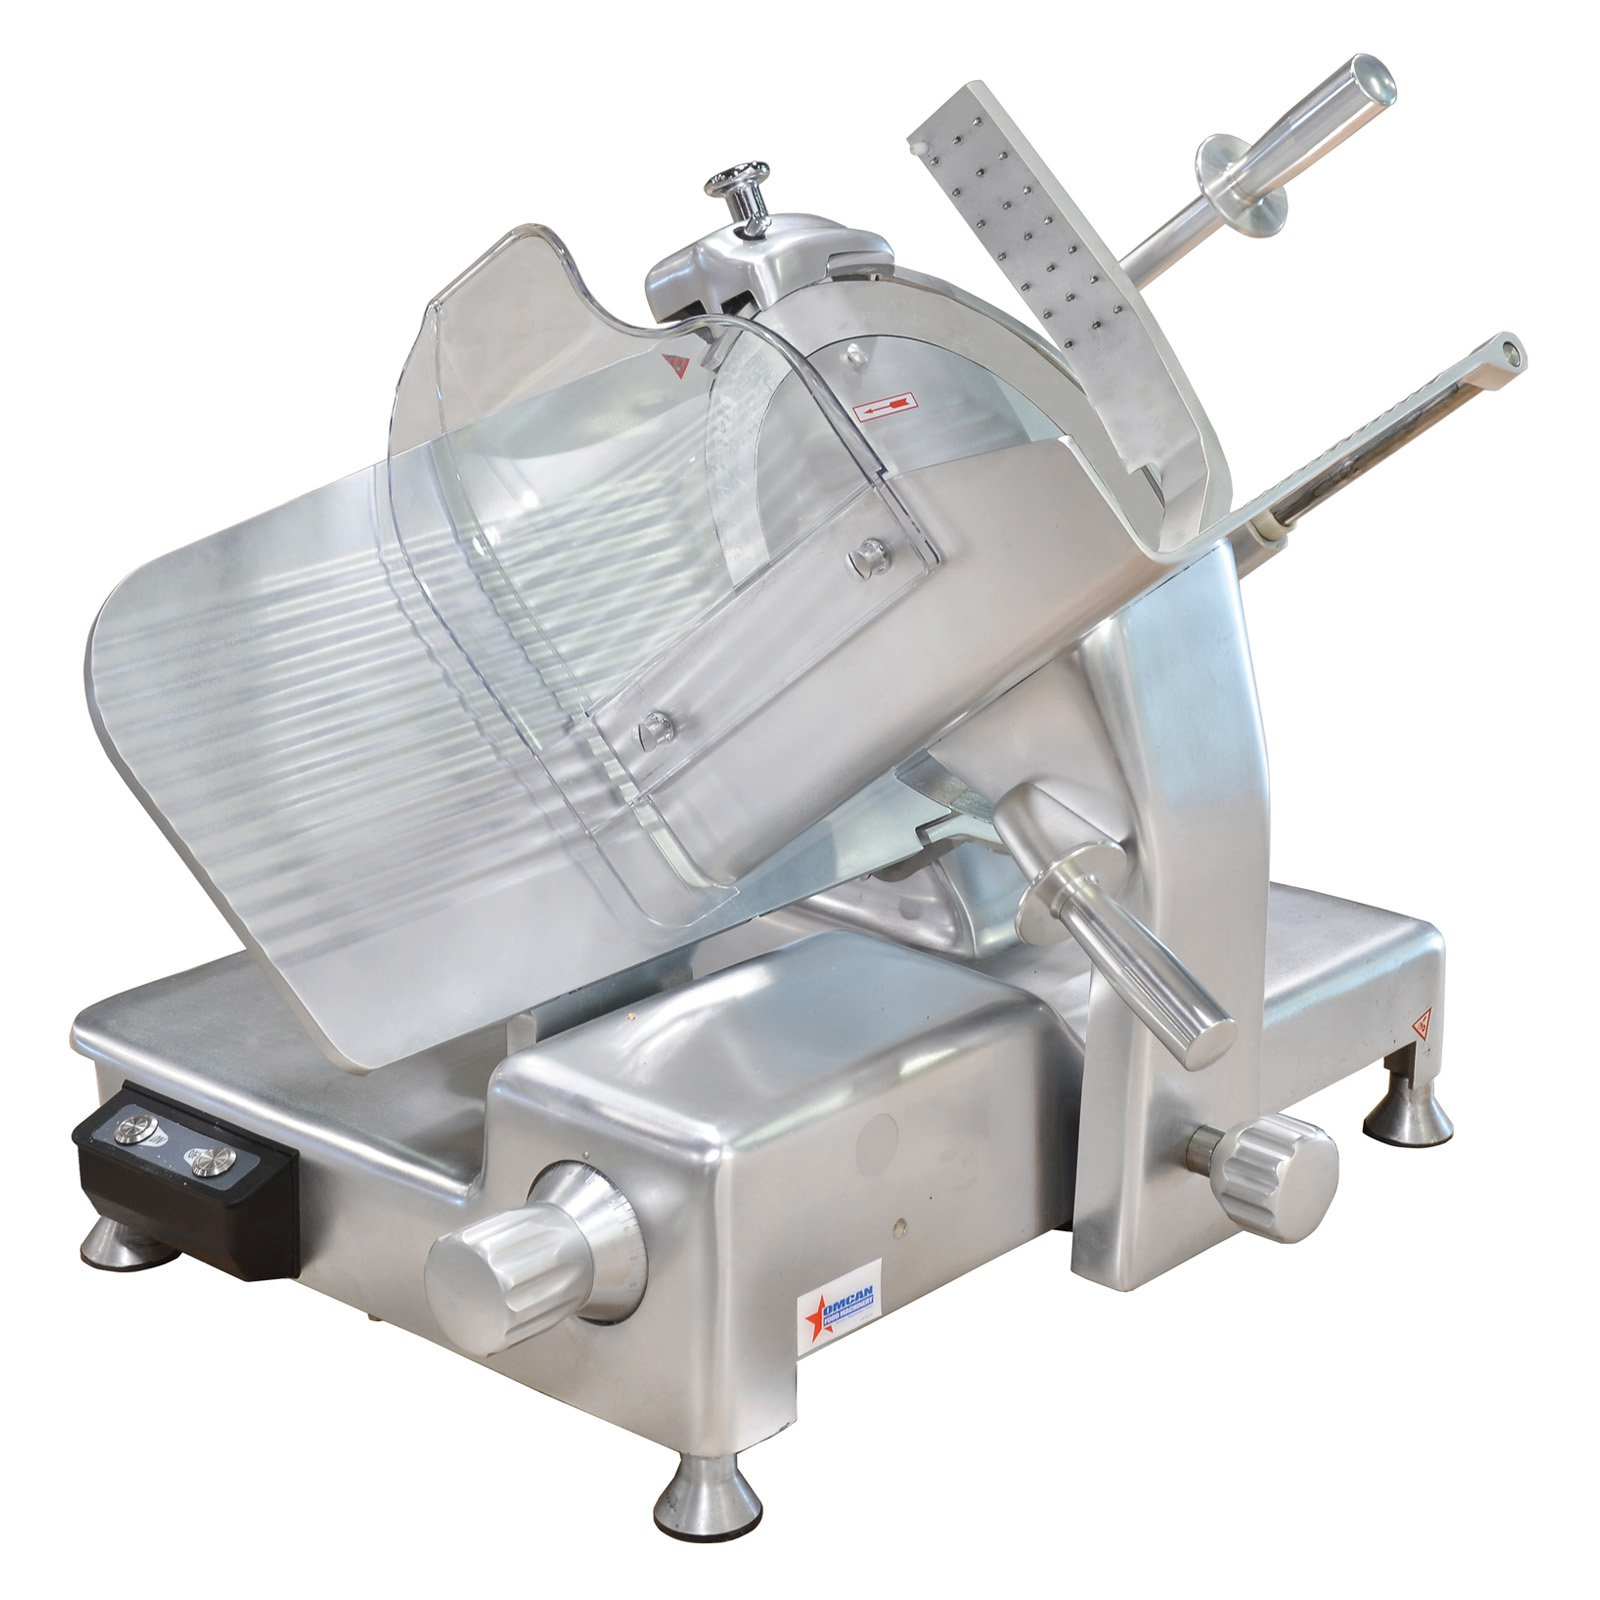 Omcan HBS-350 14 in. Commercial Food Slicer